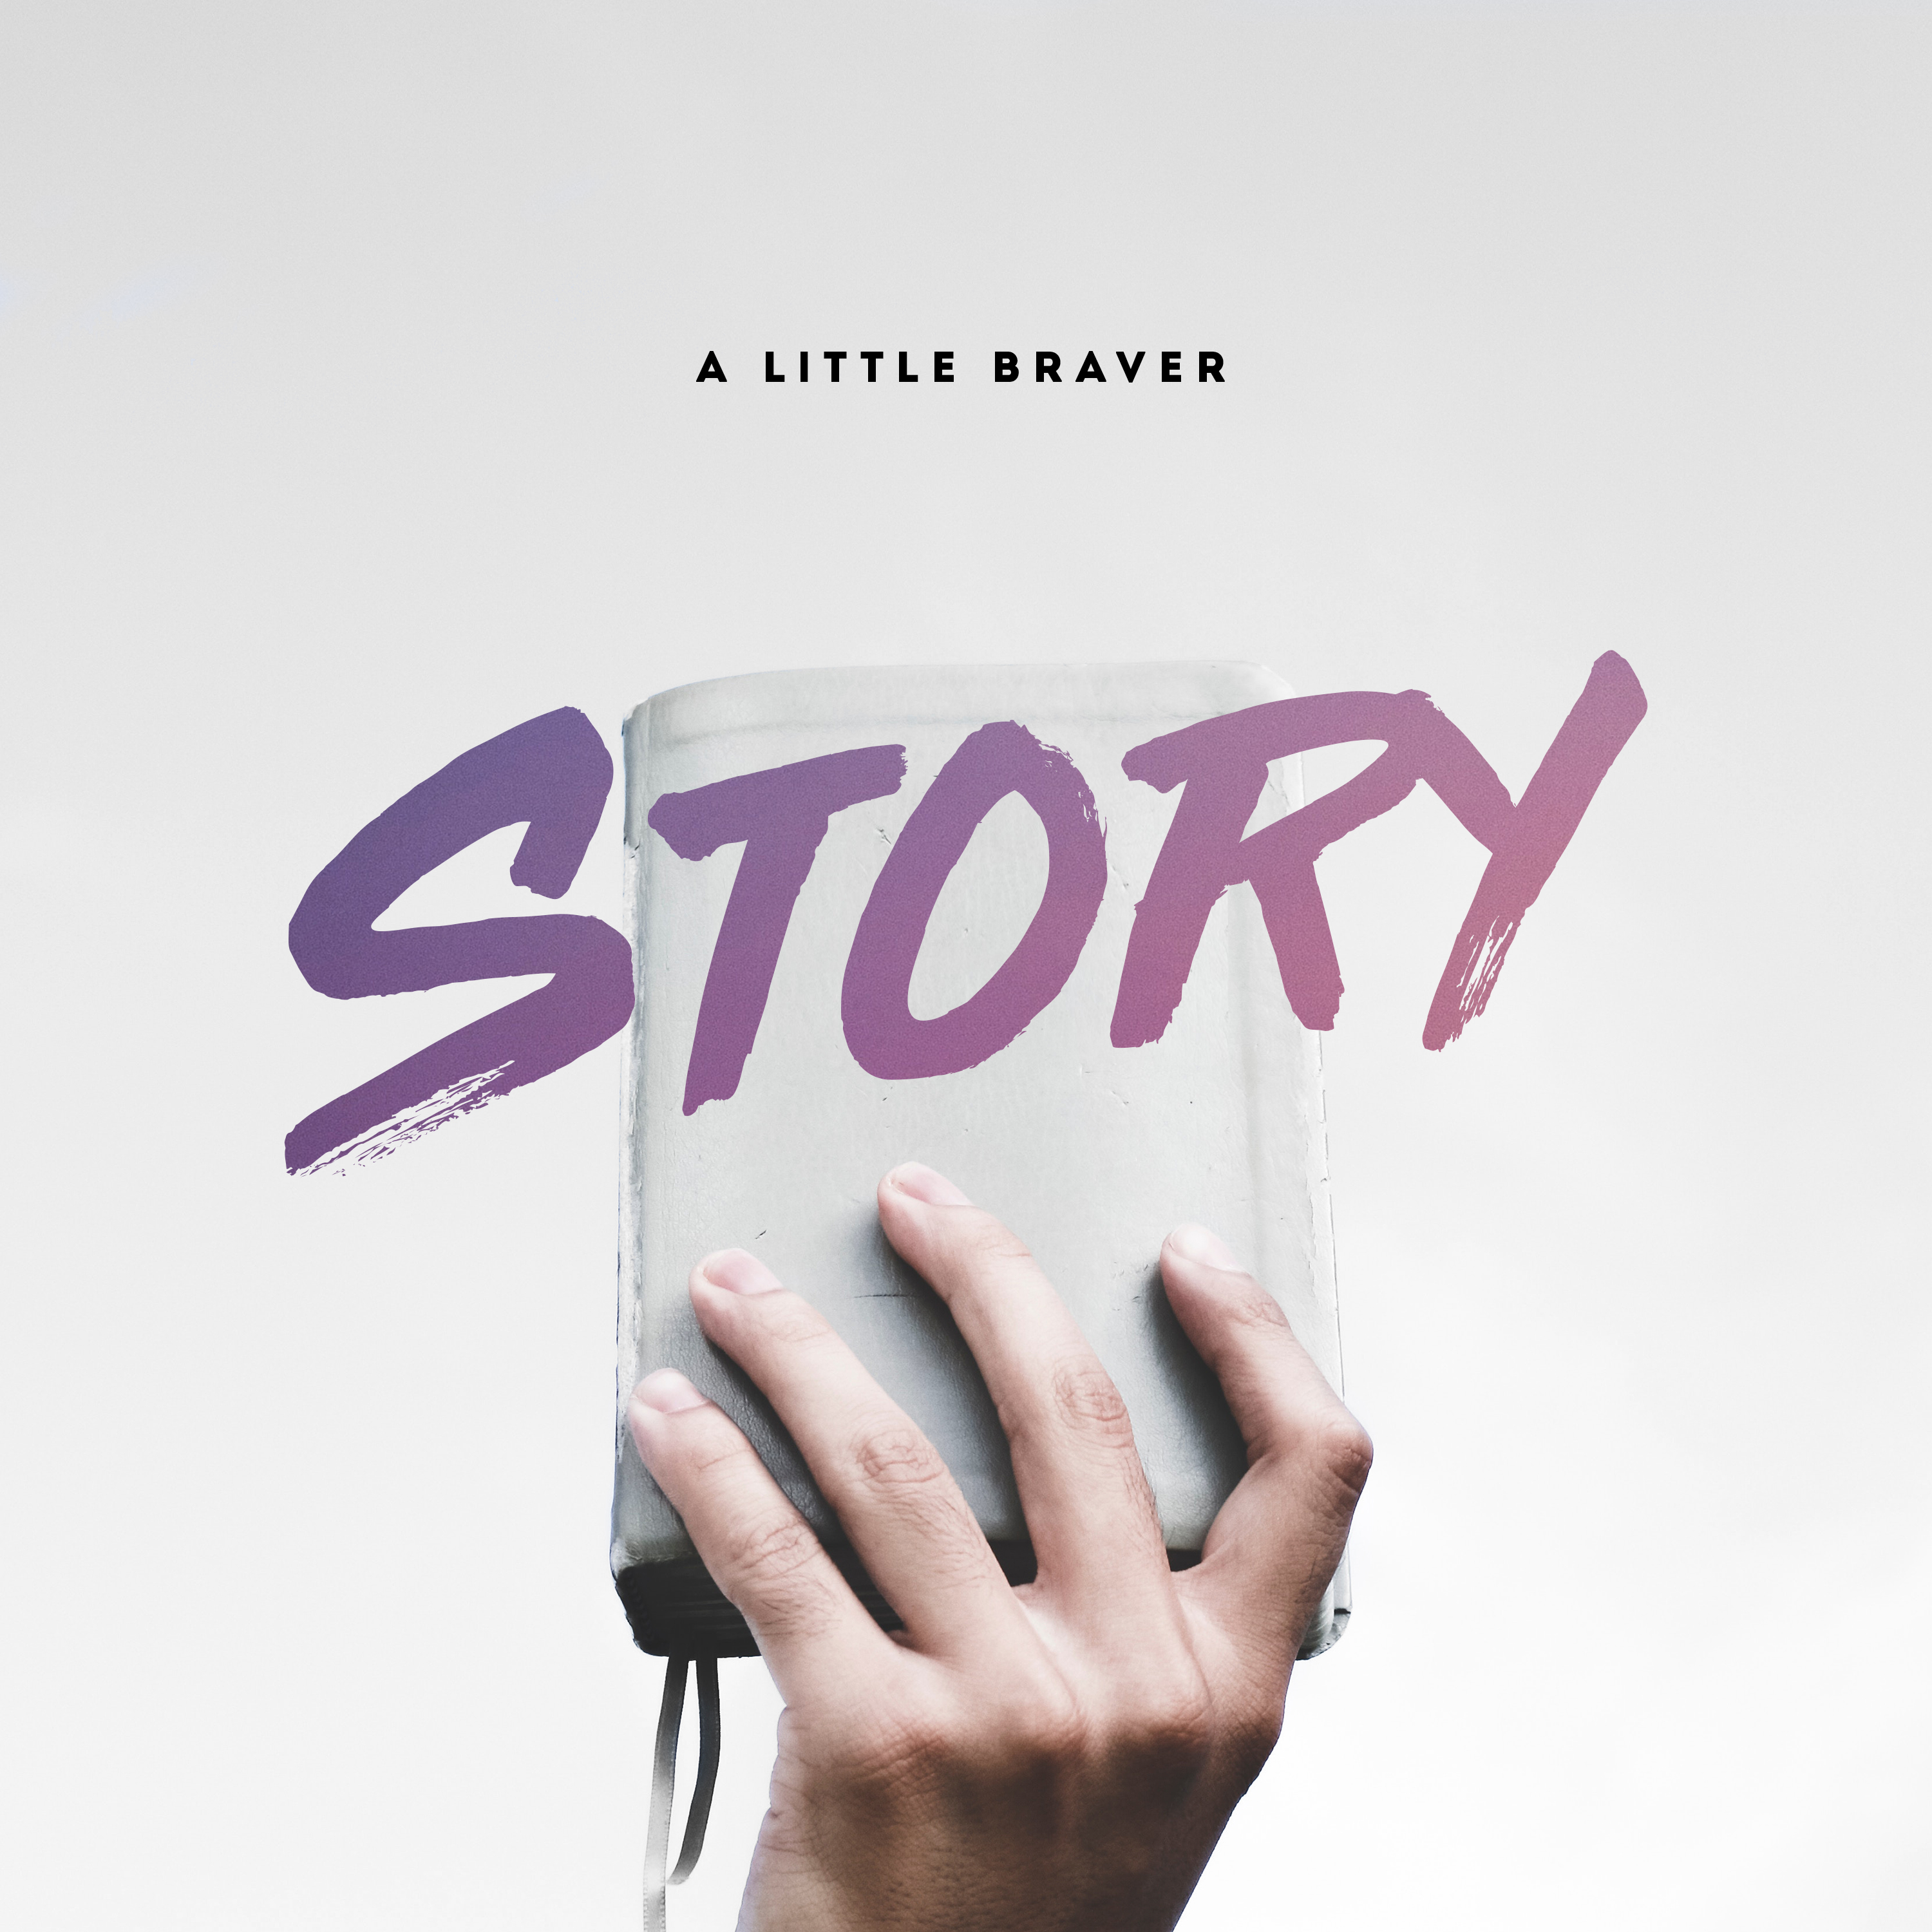 Art for Story by A Little Braver